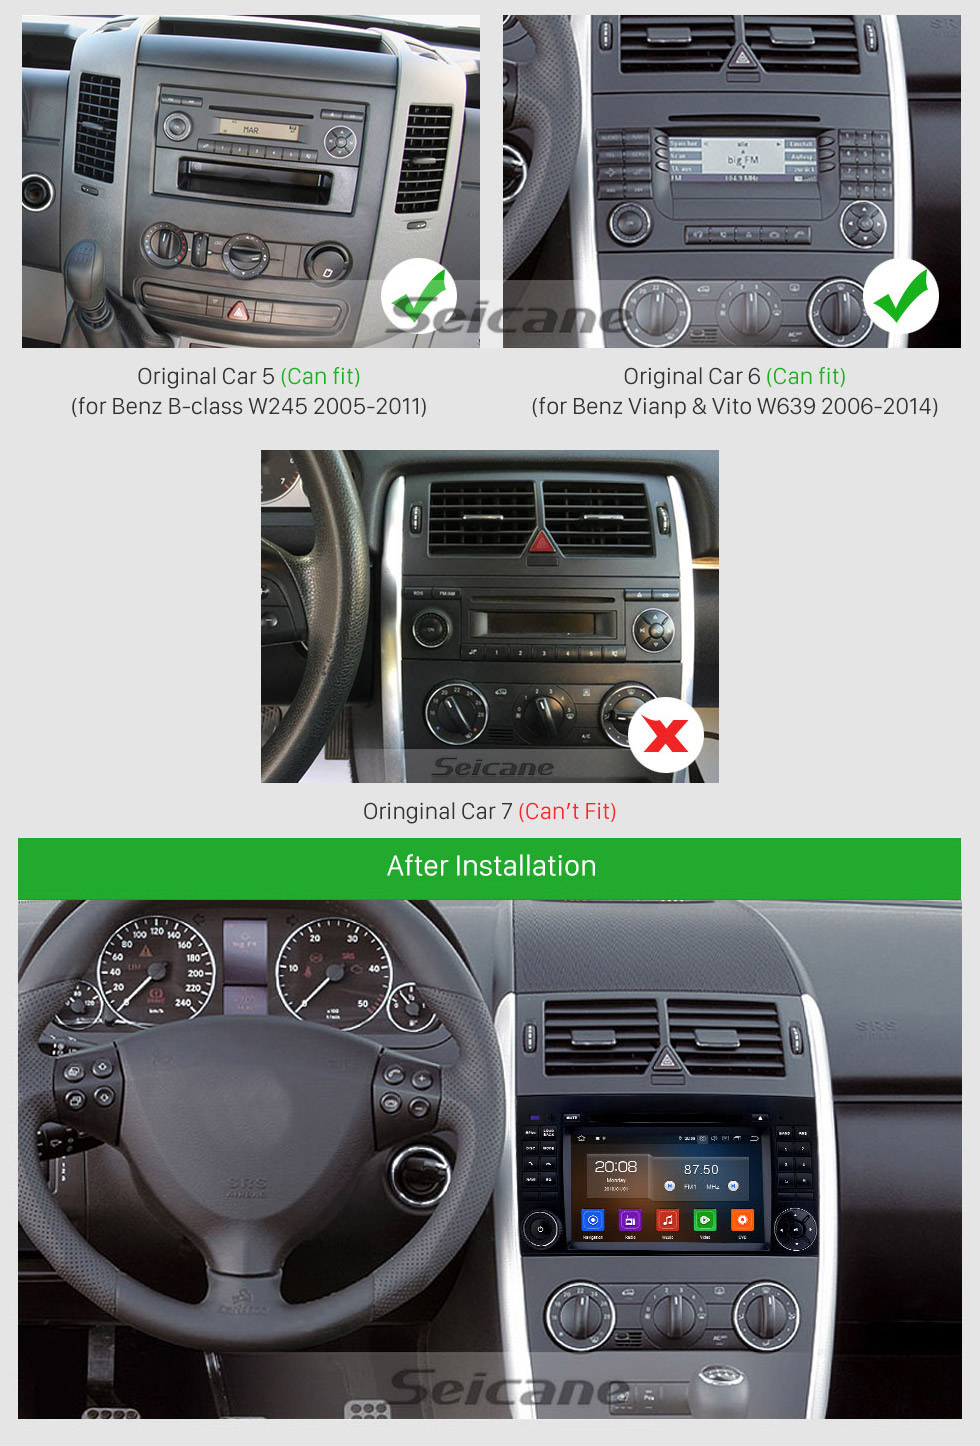 Seicane 9 inch Android 9.0 GPS Navigation Radio for VW Volkswagen Crafter Mercedes Benz Viano / Vito /B Class B55 /Sprinter /A Class A160 with Bluetooth WiFi Touchscreen support Carplay DVR